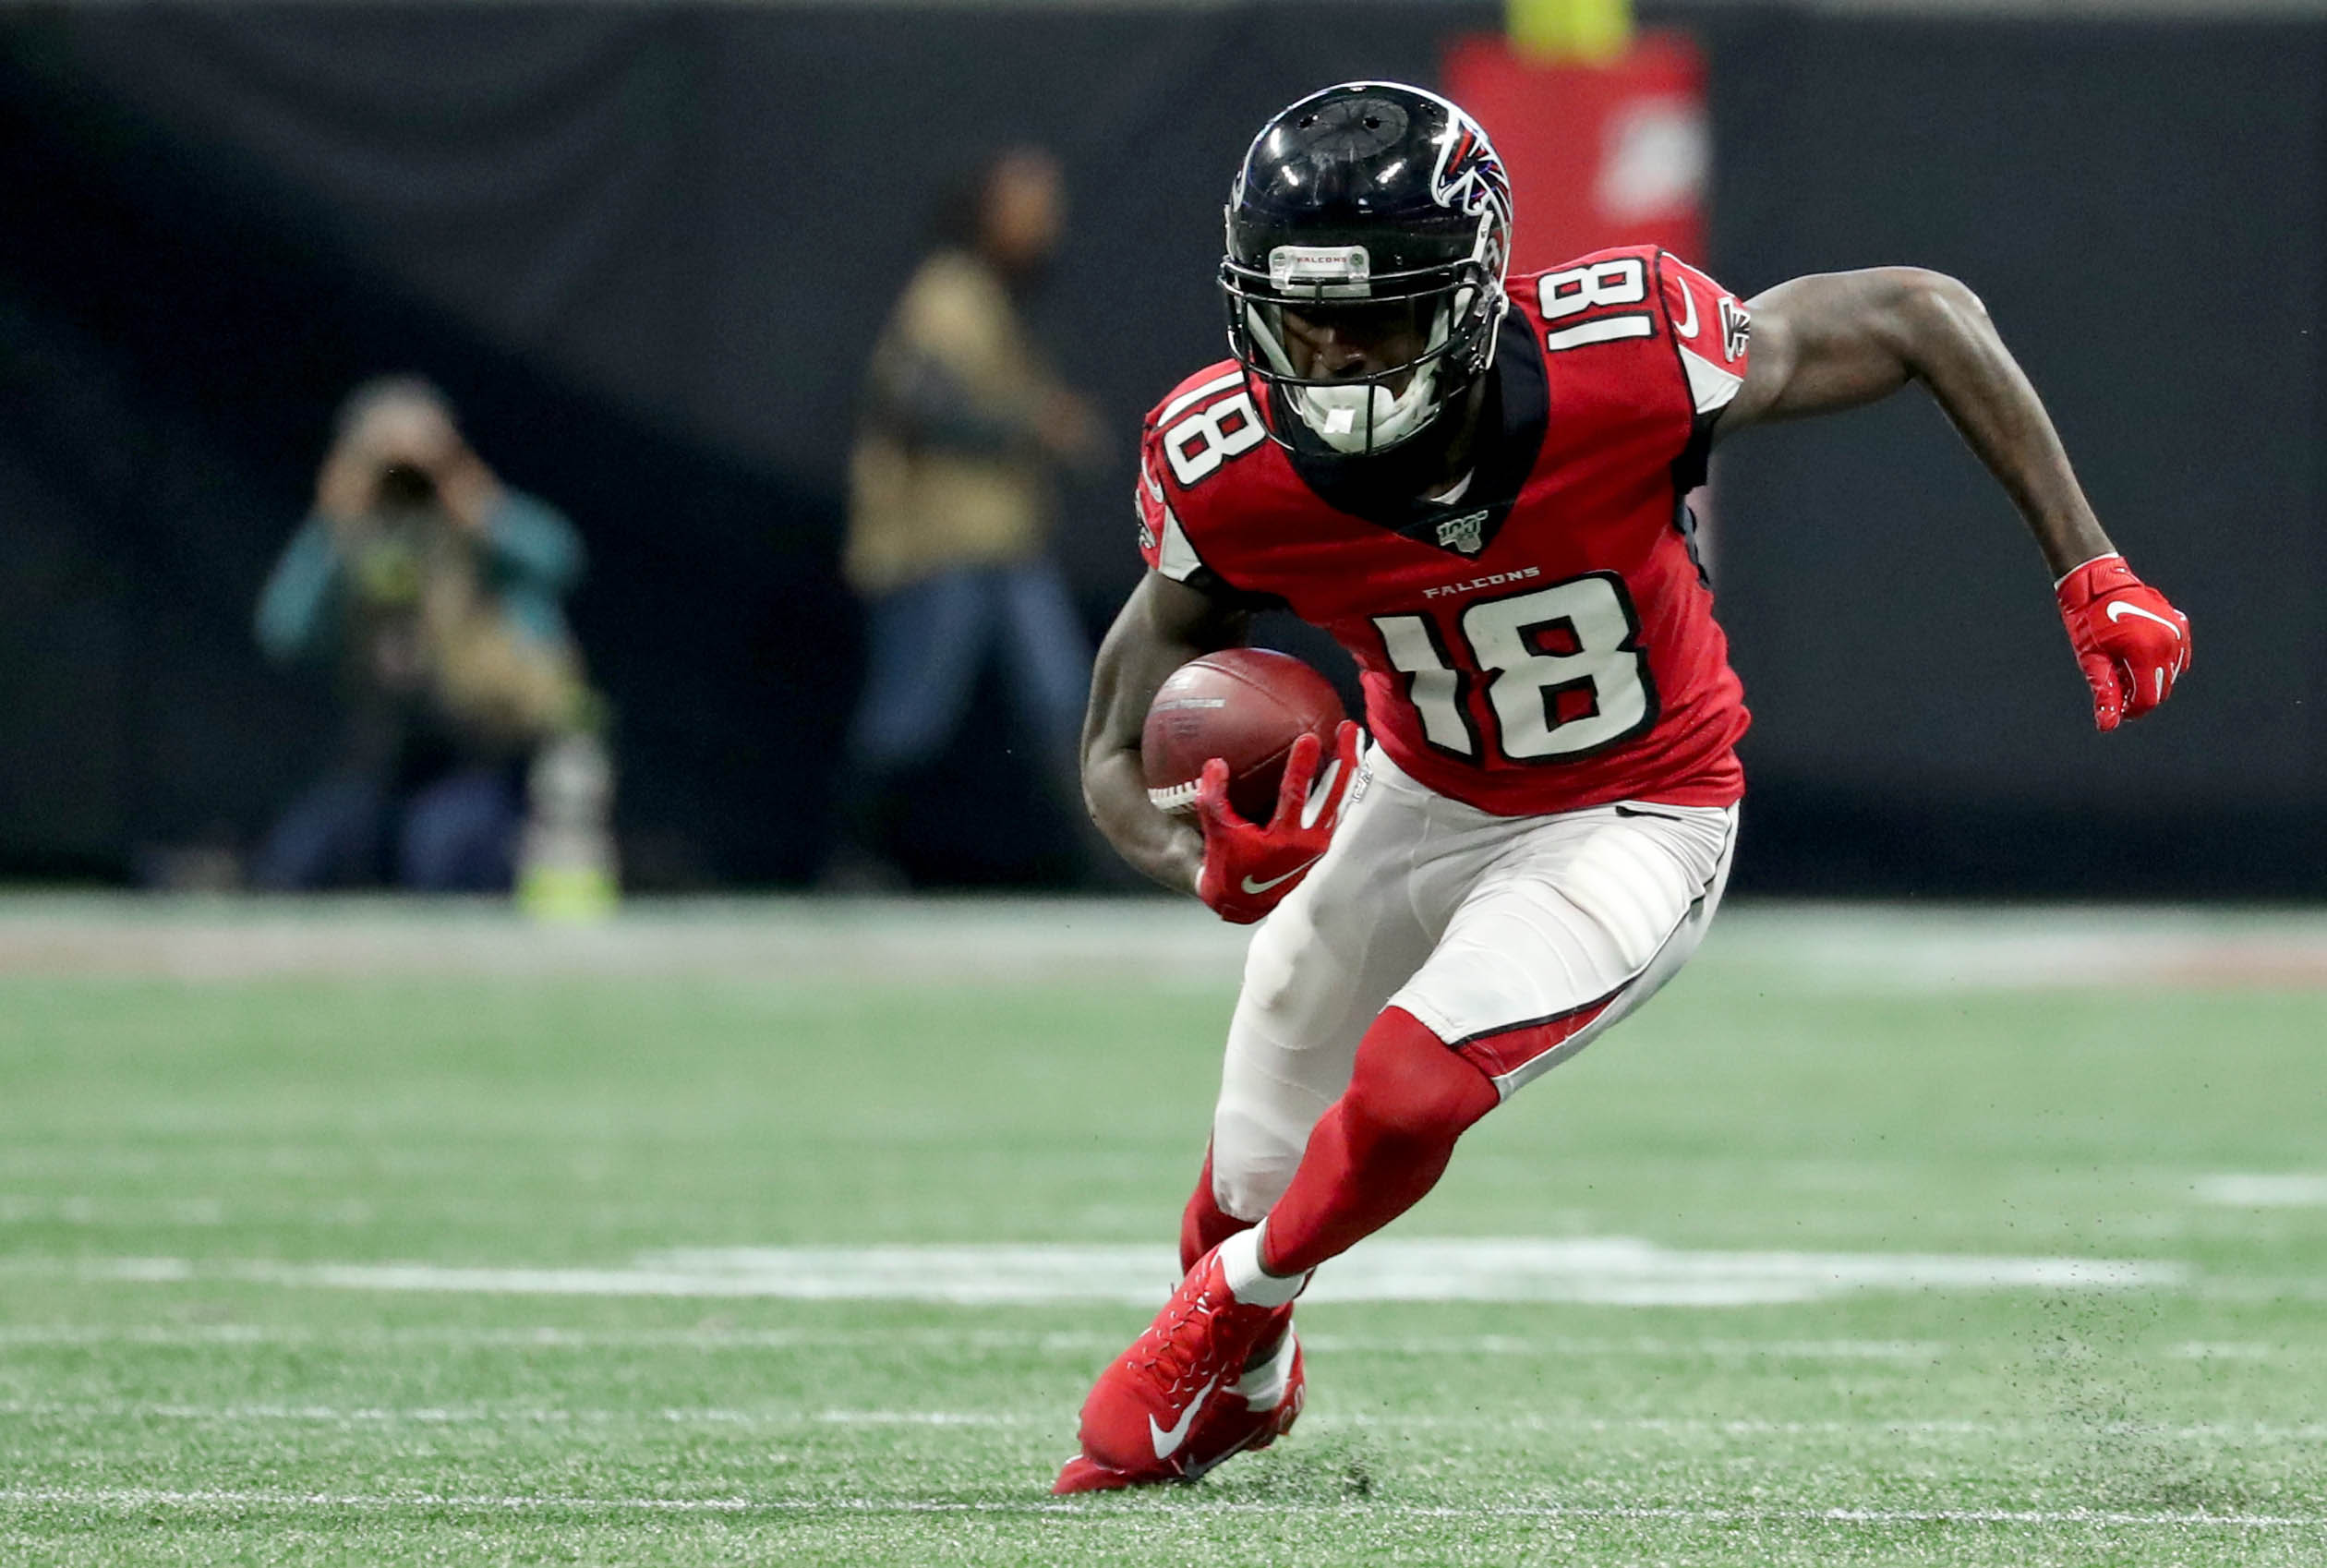 BREAKING: Falcons WR Calvin Ridley to miss the rest of the season with abdominal injury